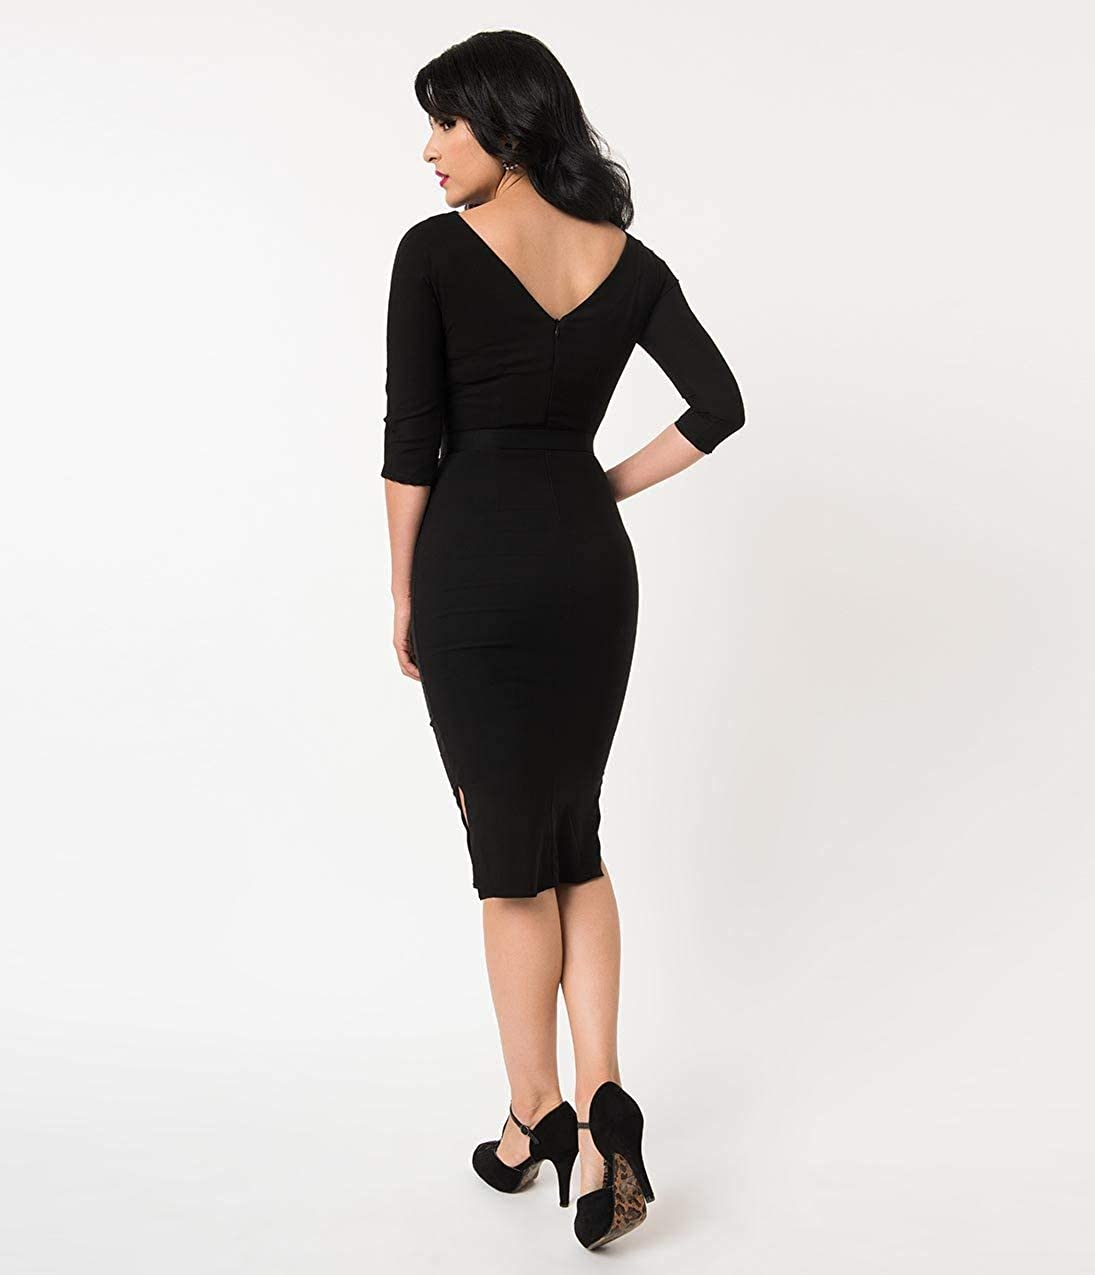 baa92ed60b Unique Vintage 1940s Style Black Stretch Sleeved Adelia Wiggle Dress at  Amazon Women s Clothing store